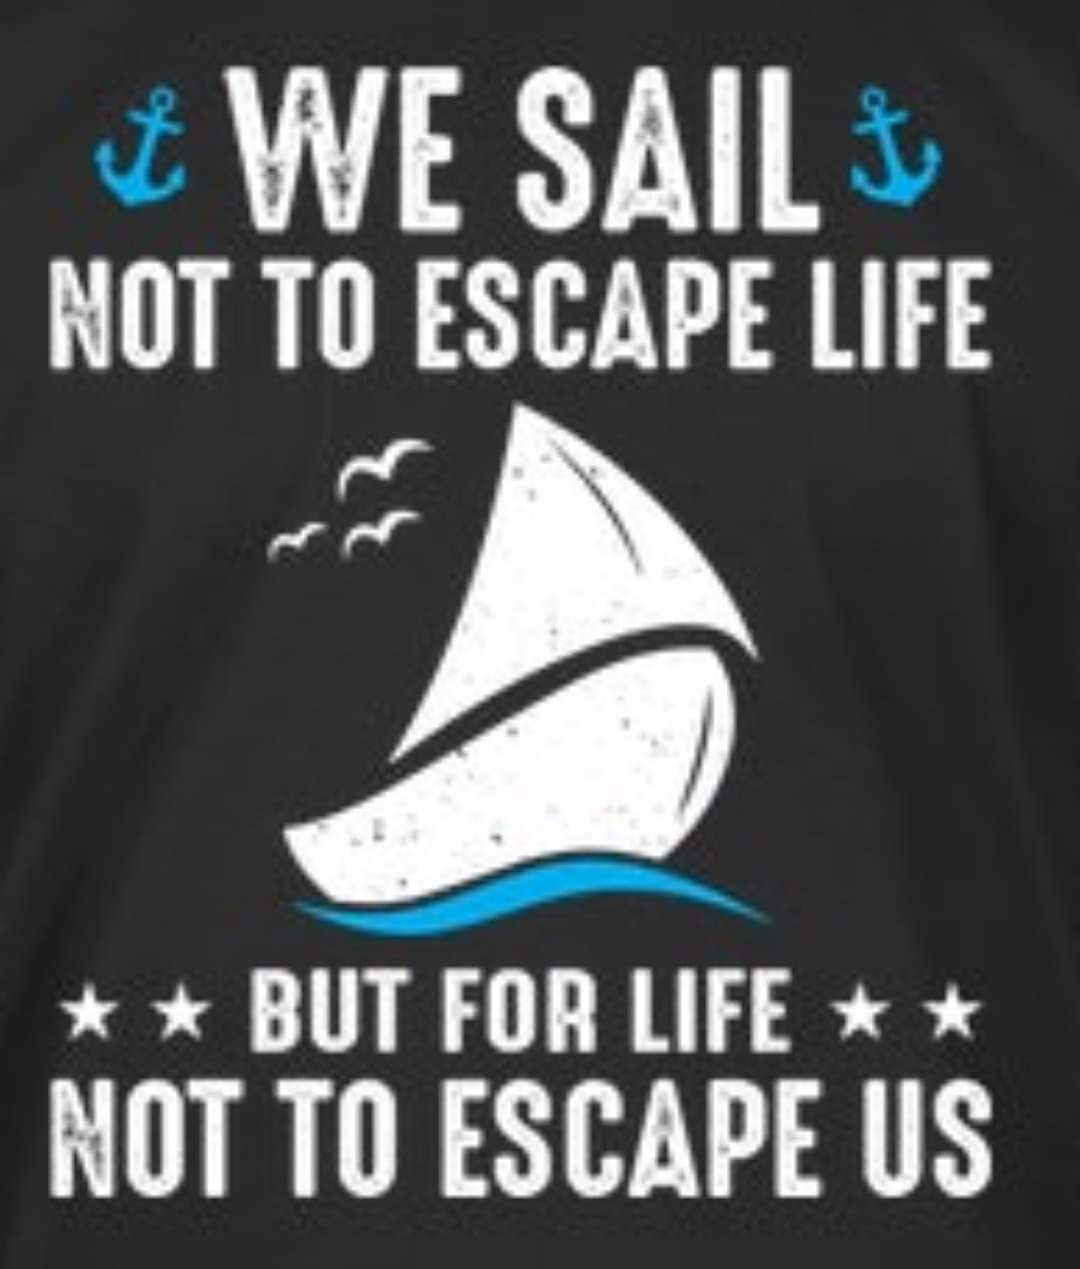 sail_for_life_not_to_escape_us.jpg